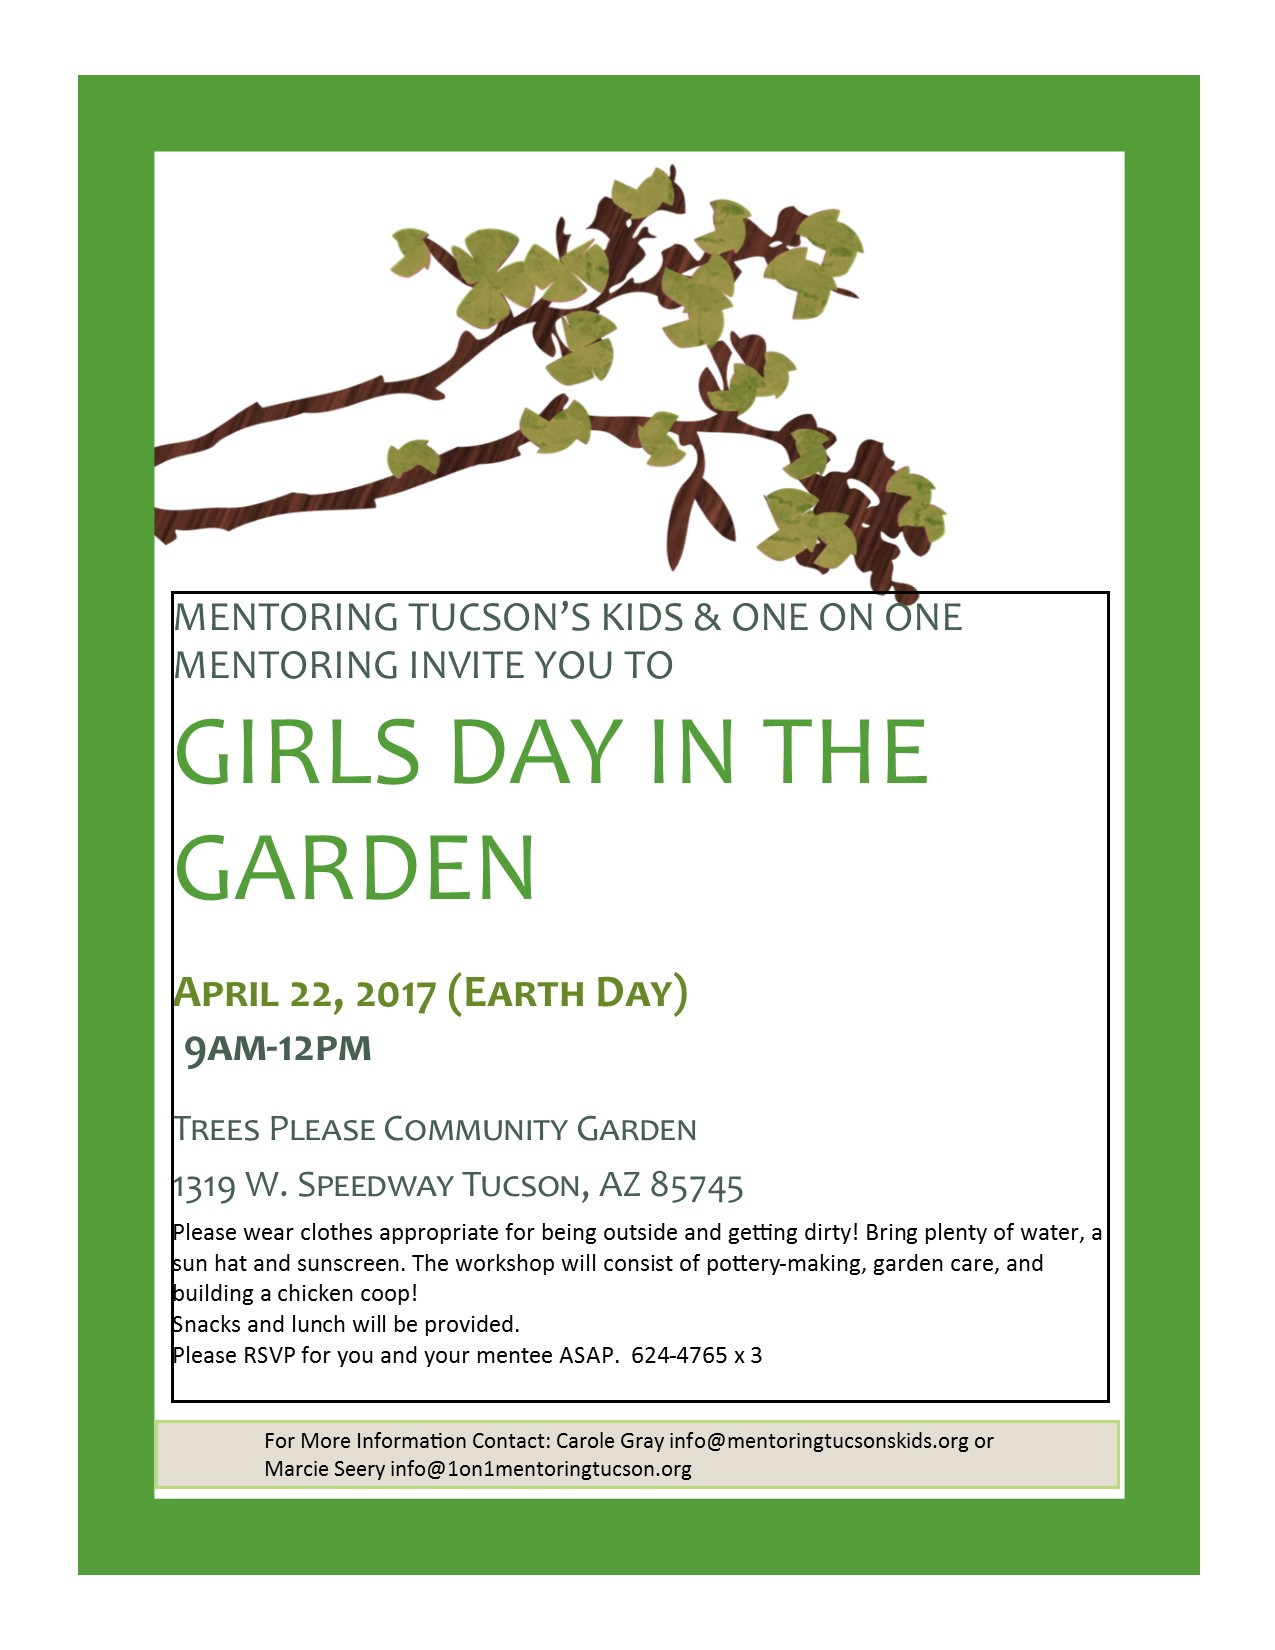 Girls day out garden flyer